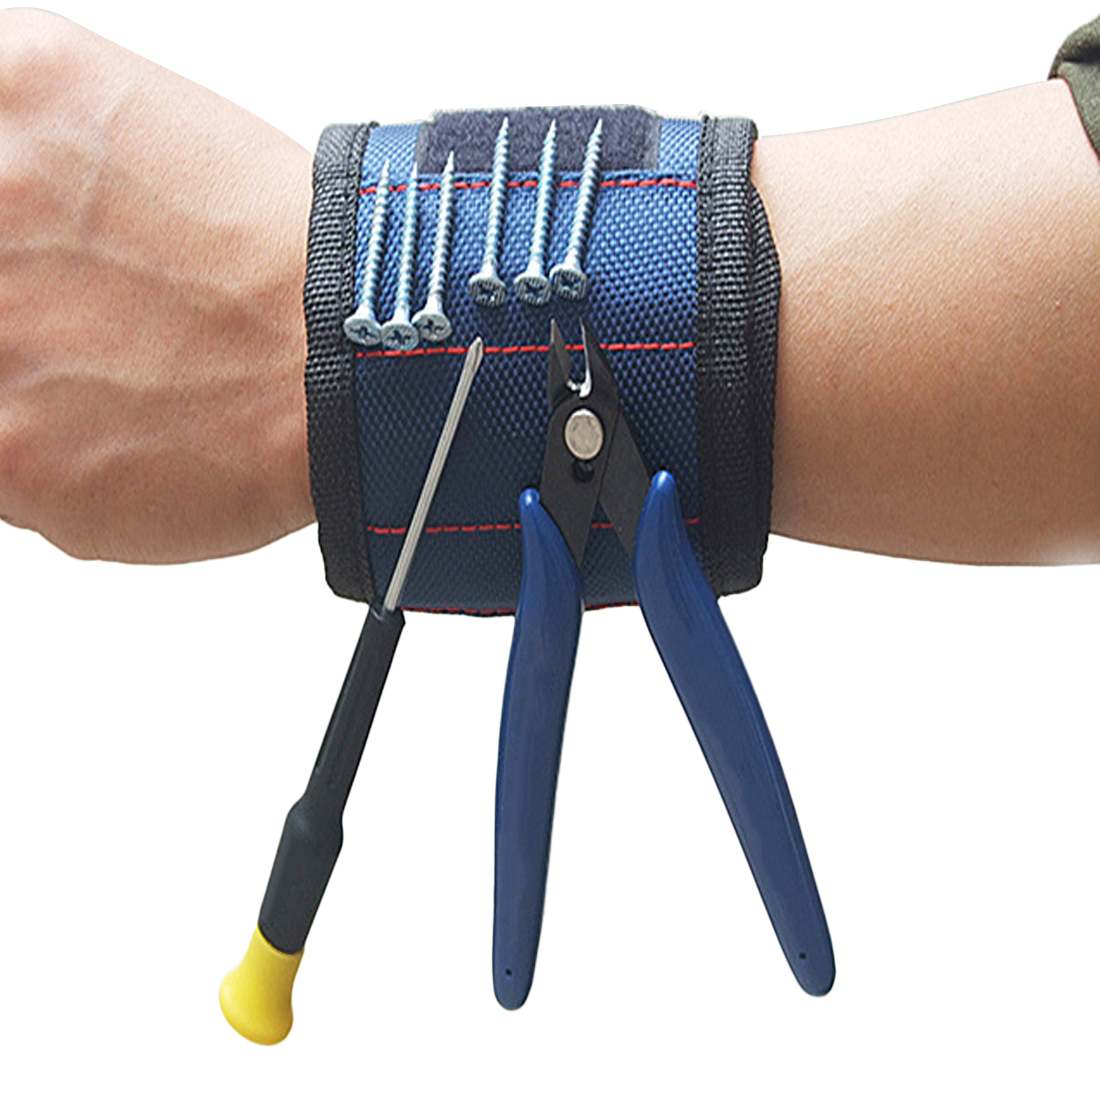 Adjustable Magnetic Wrist Support Band With Strong Magnets For Holding Screws Nail Bracelet Belt Support Chuck